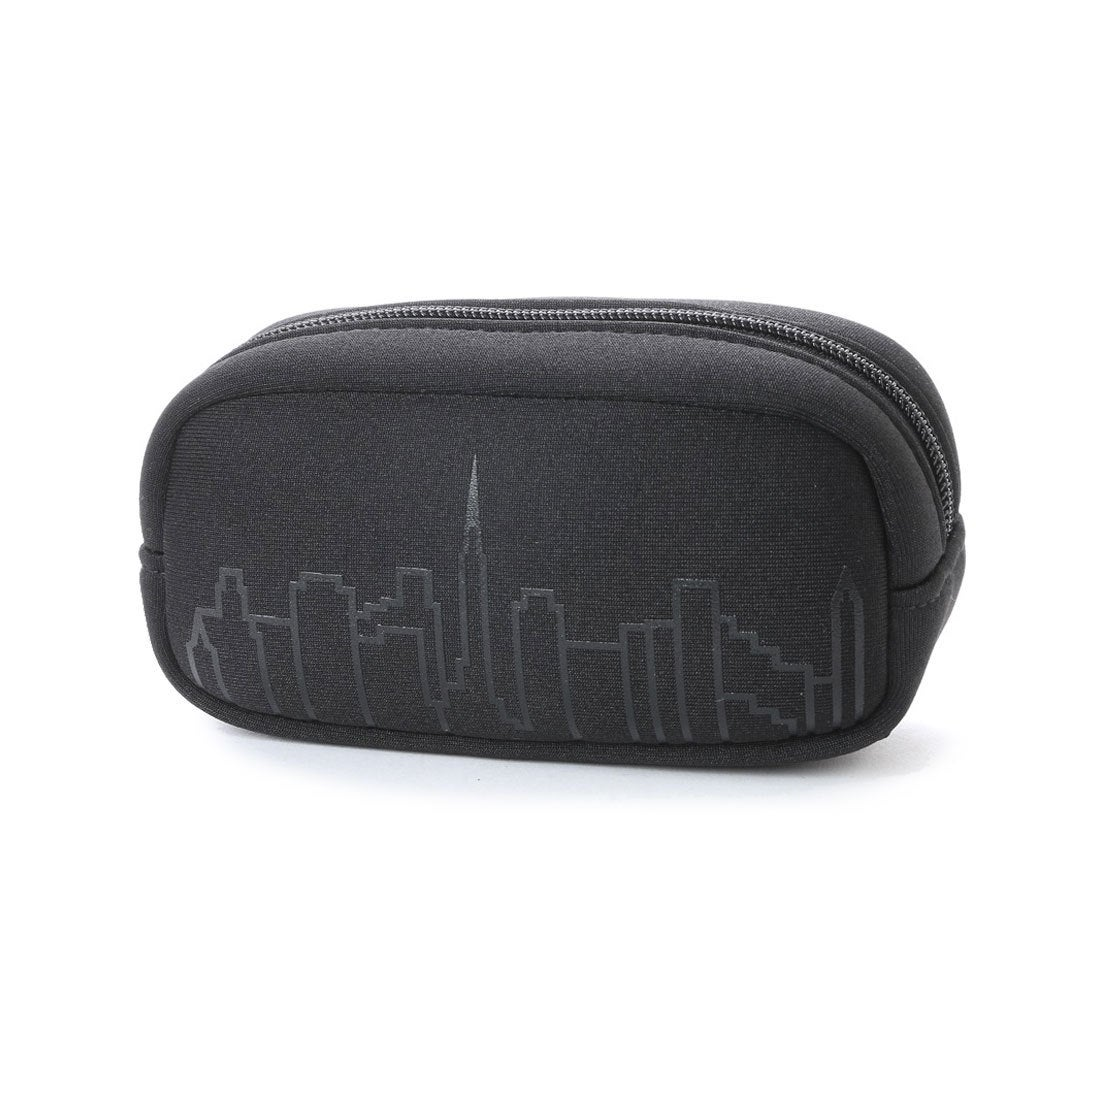 マンハッタンポーテージ Manhattan Portage Neoprene Pouch (Black)